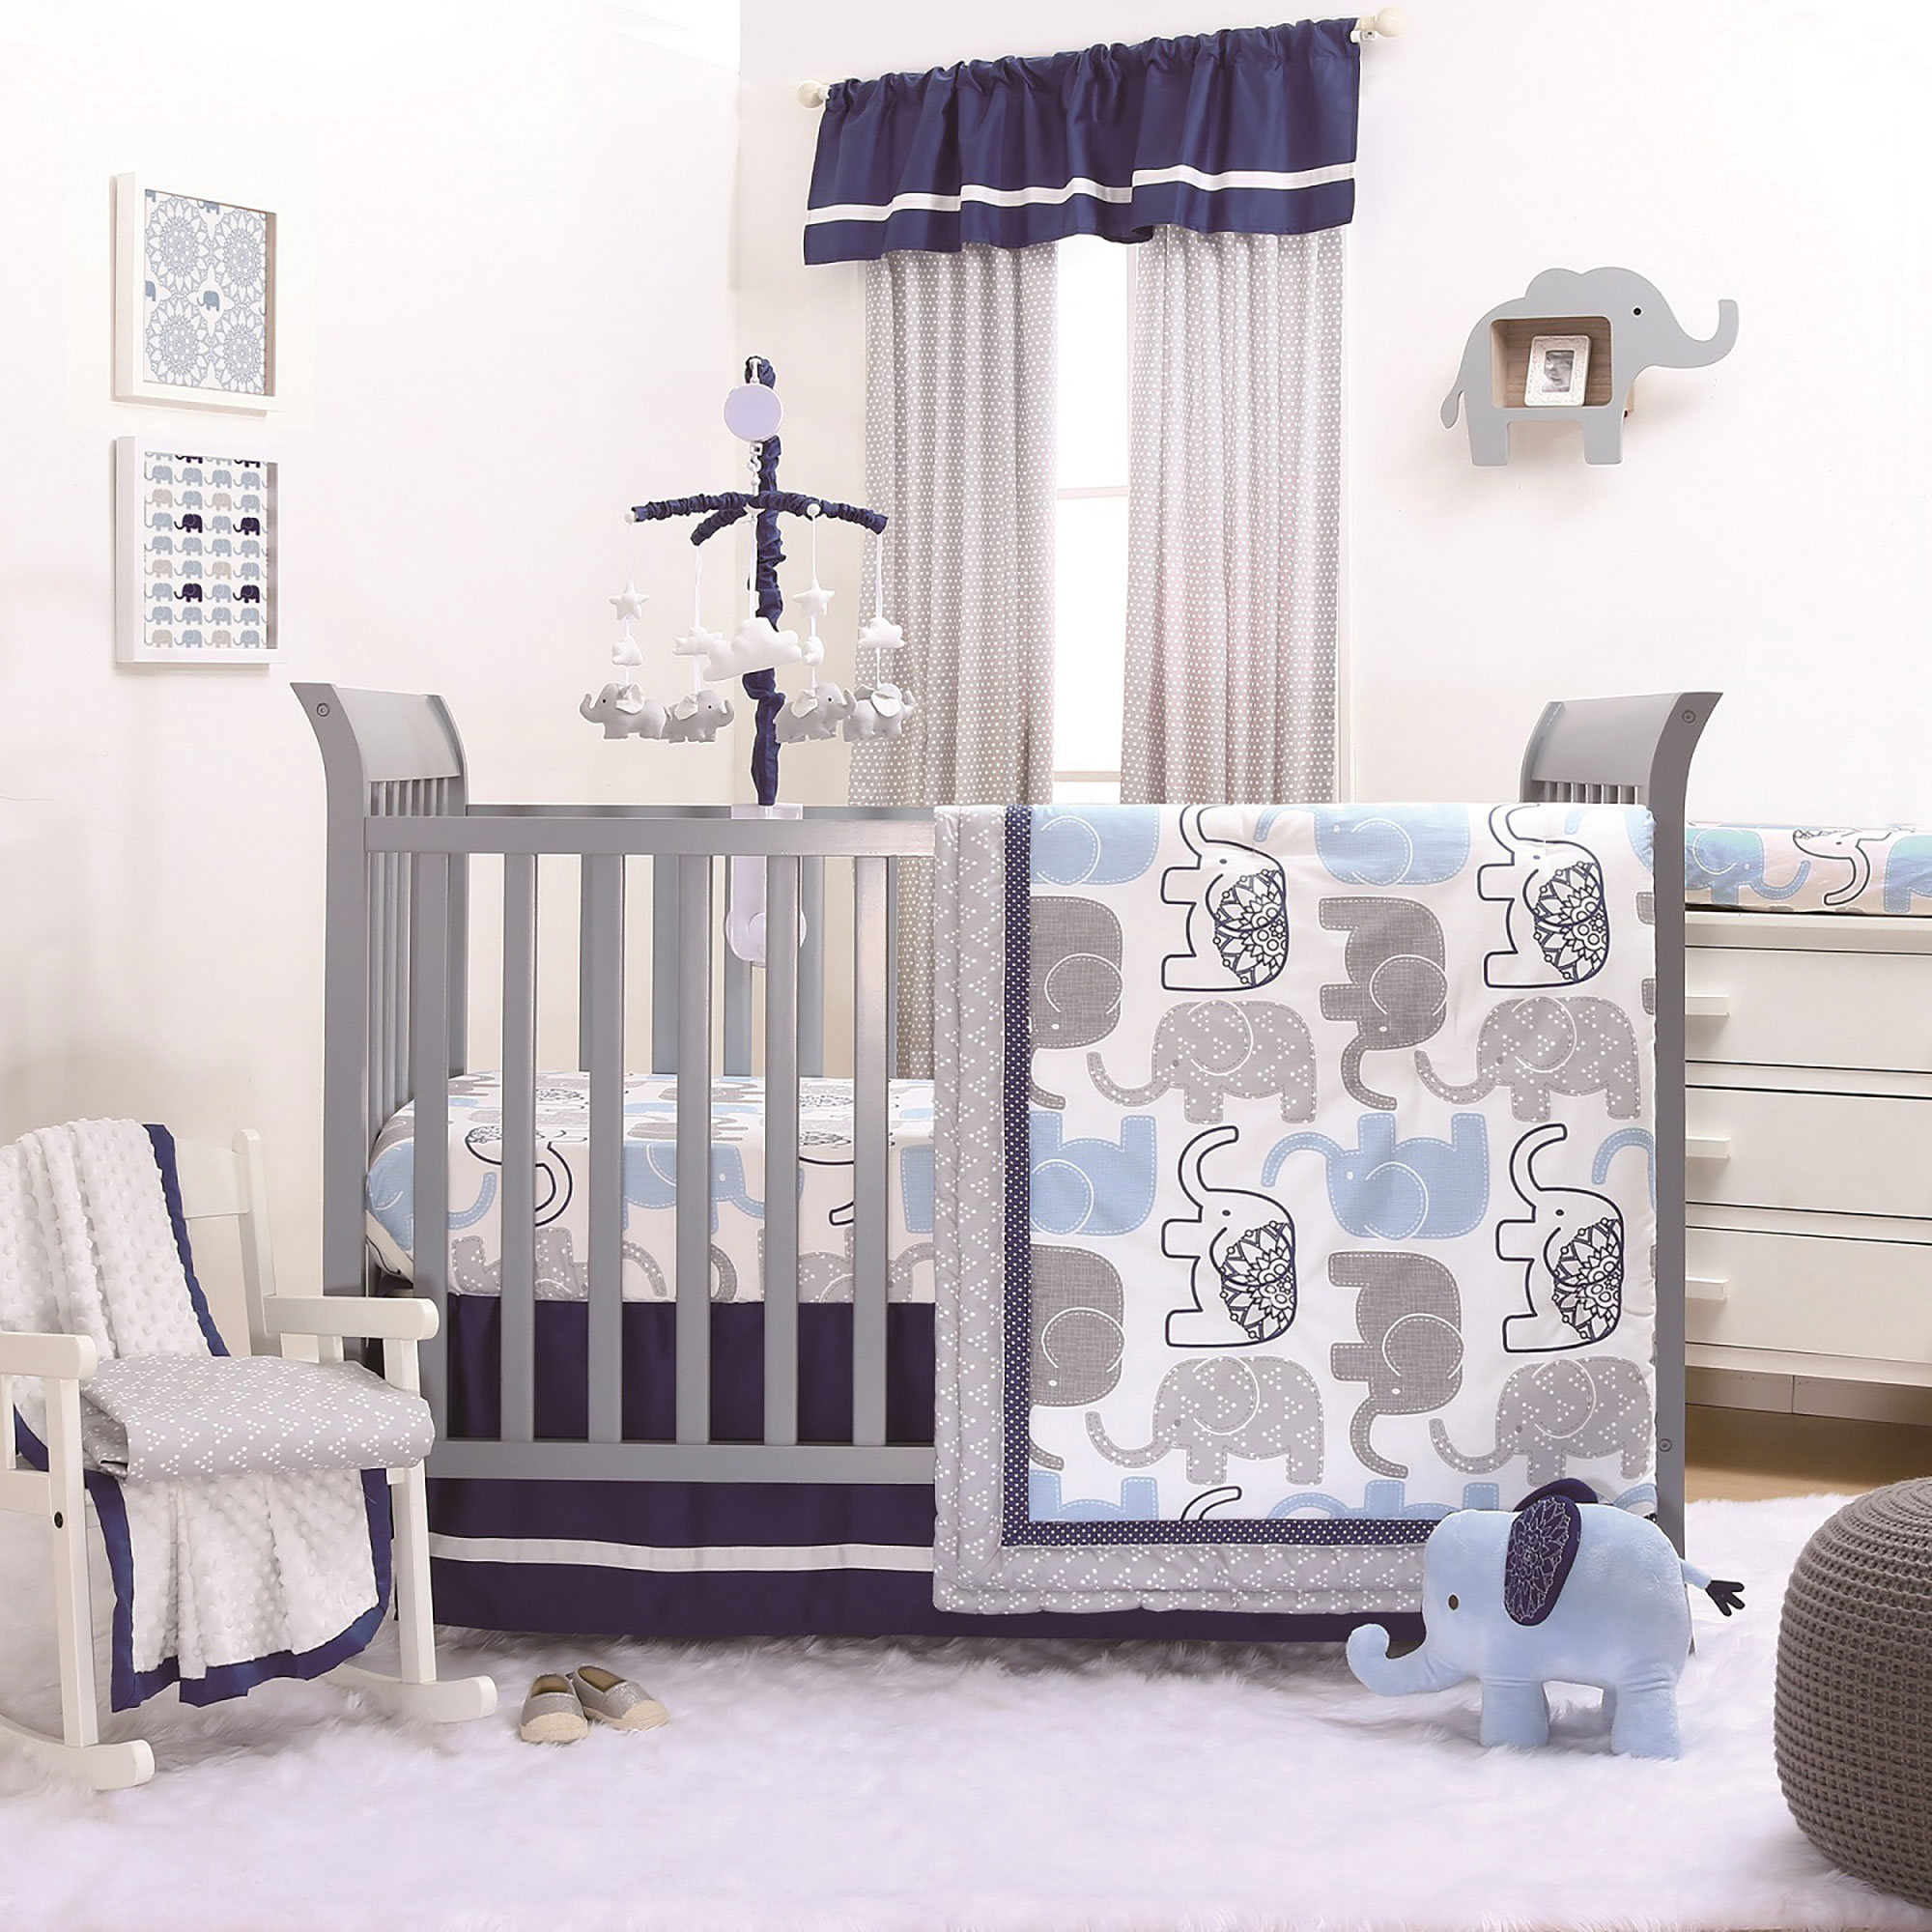 The Peanut Shell 4 Piece Baby Boy Crib Bedding Set - Little Peanut Navy Blue and Grey Elephants - 100% Cotton Fabrics